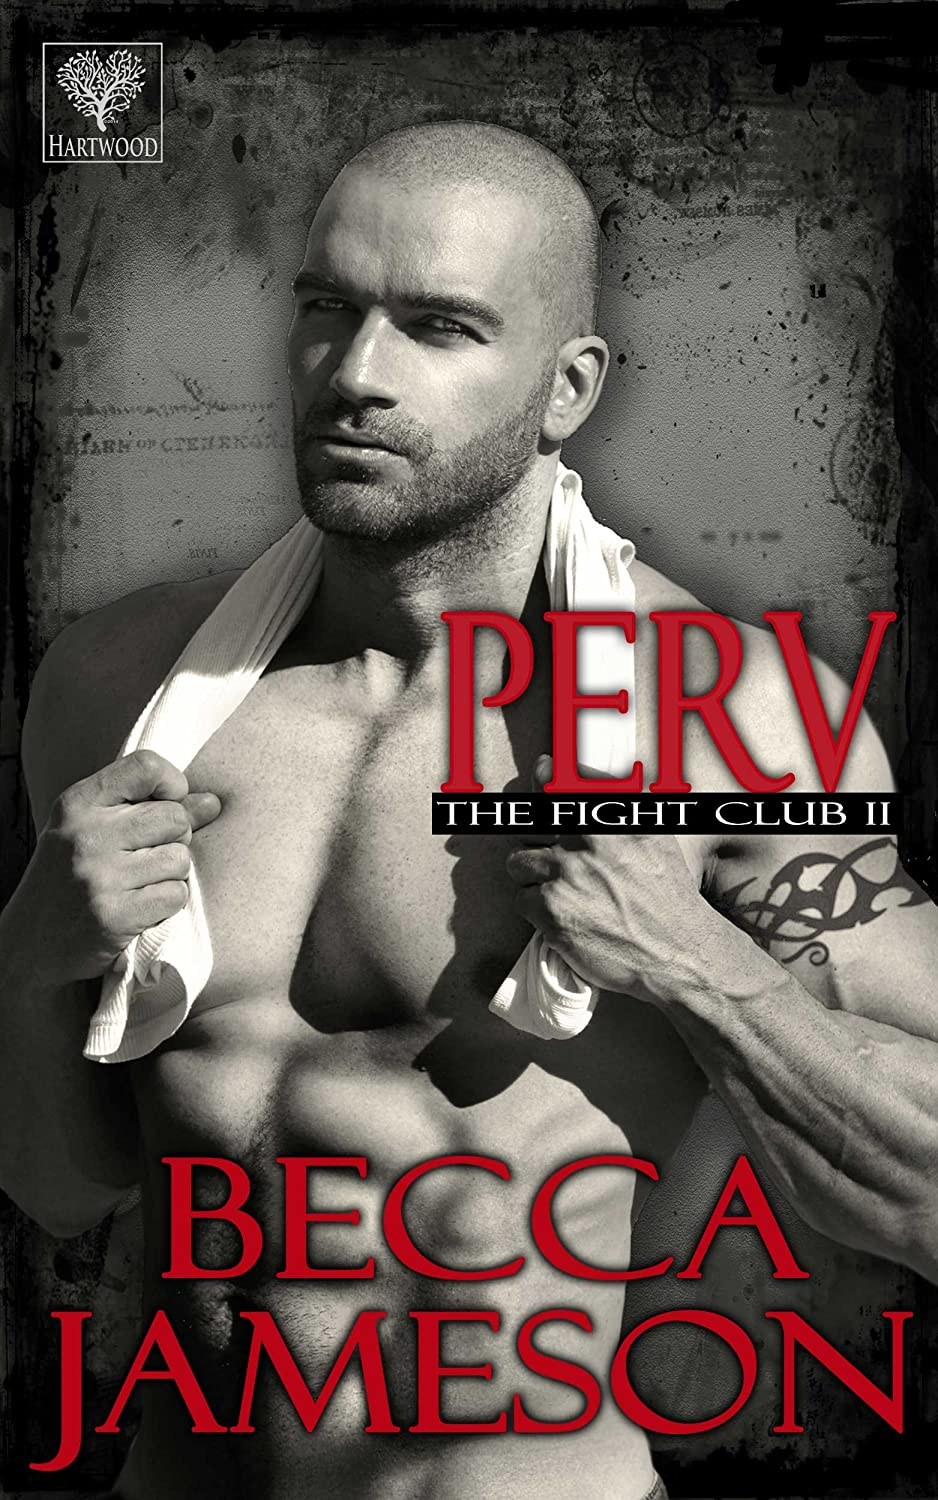 Perv (The Fight Club Book 2) - Becca Jameson